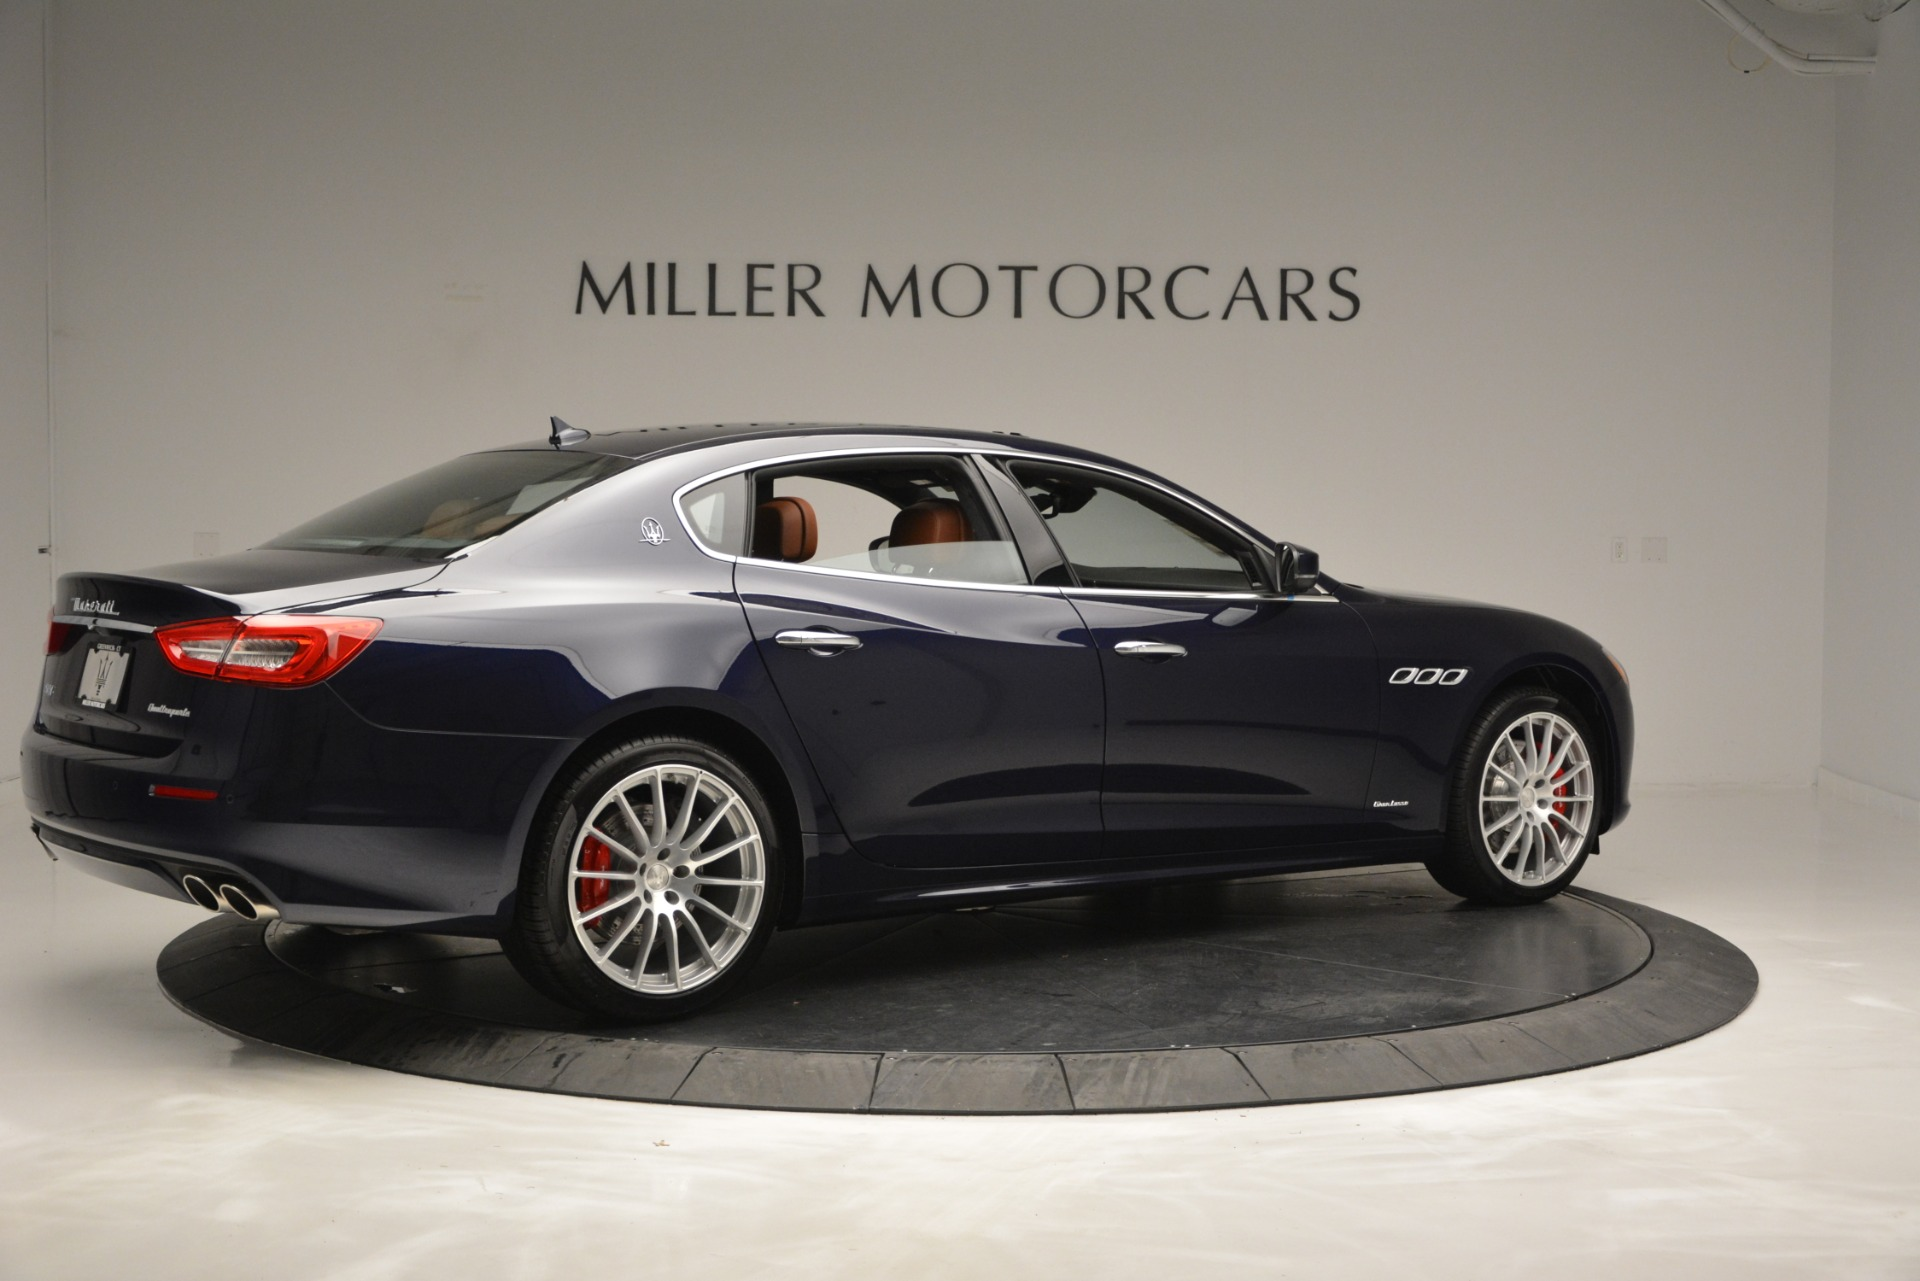 New 2019 Maserati Quattroporte S Q4 GranLusso For Sale In Greenwich, CT 2620_p8